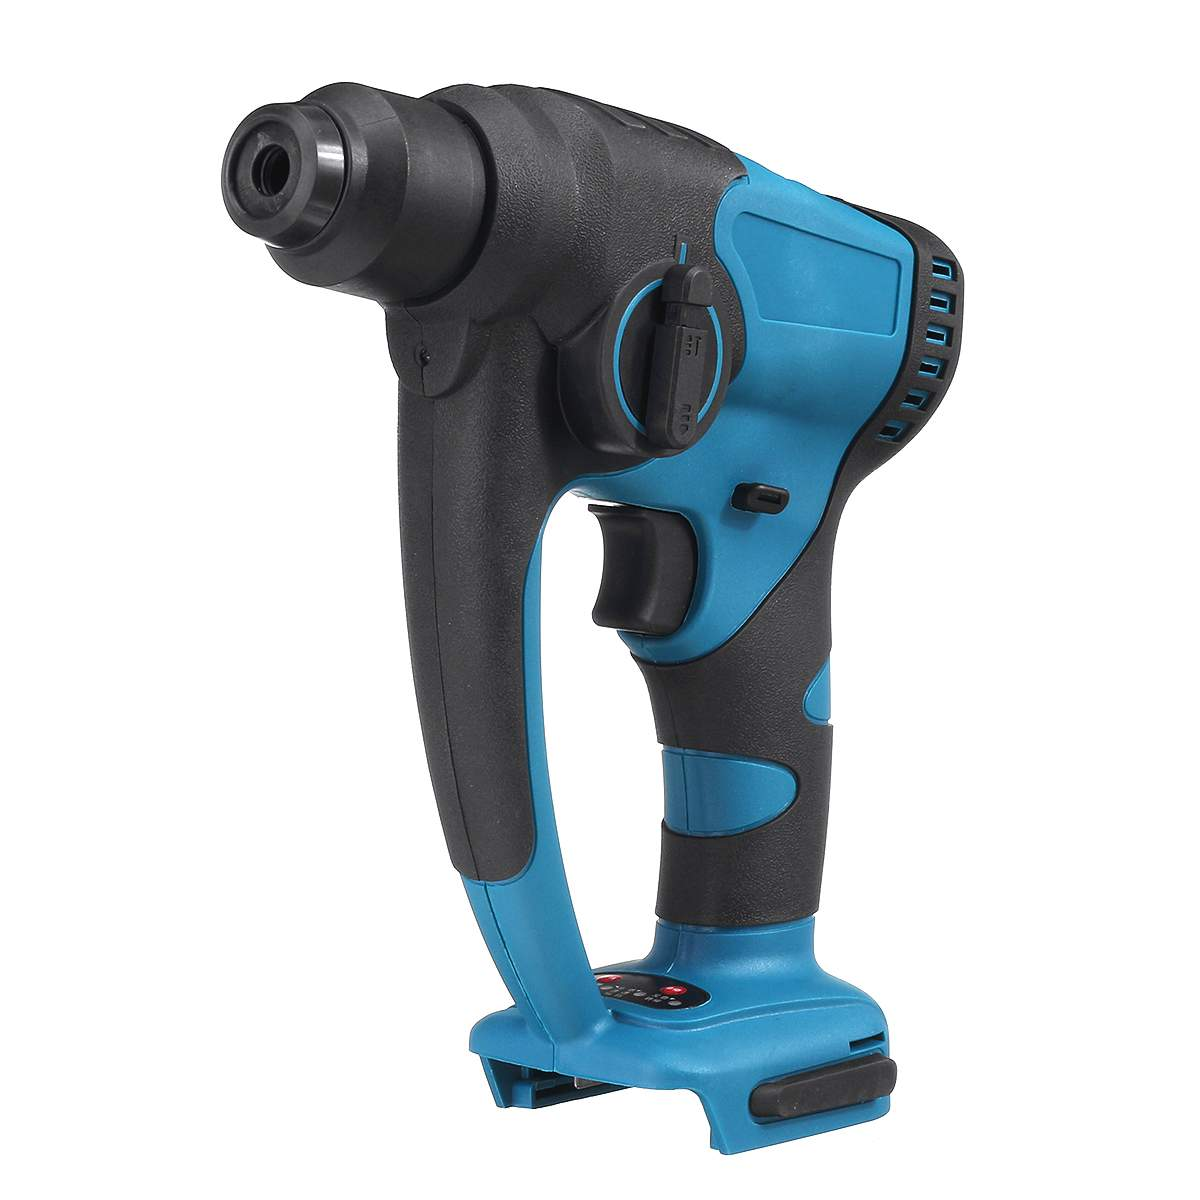 21V Rechargeable Brushless Cordless Rotary Hammer Drill Electric Demolition Hammer Power Impact Drill Adapted To Makita Battery